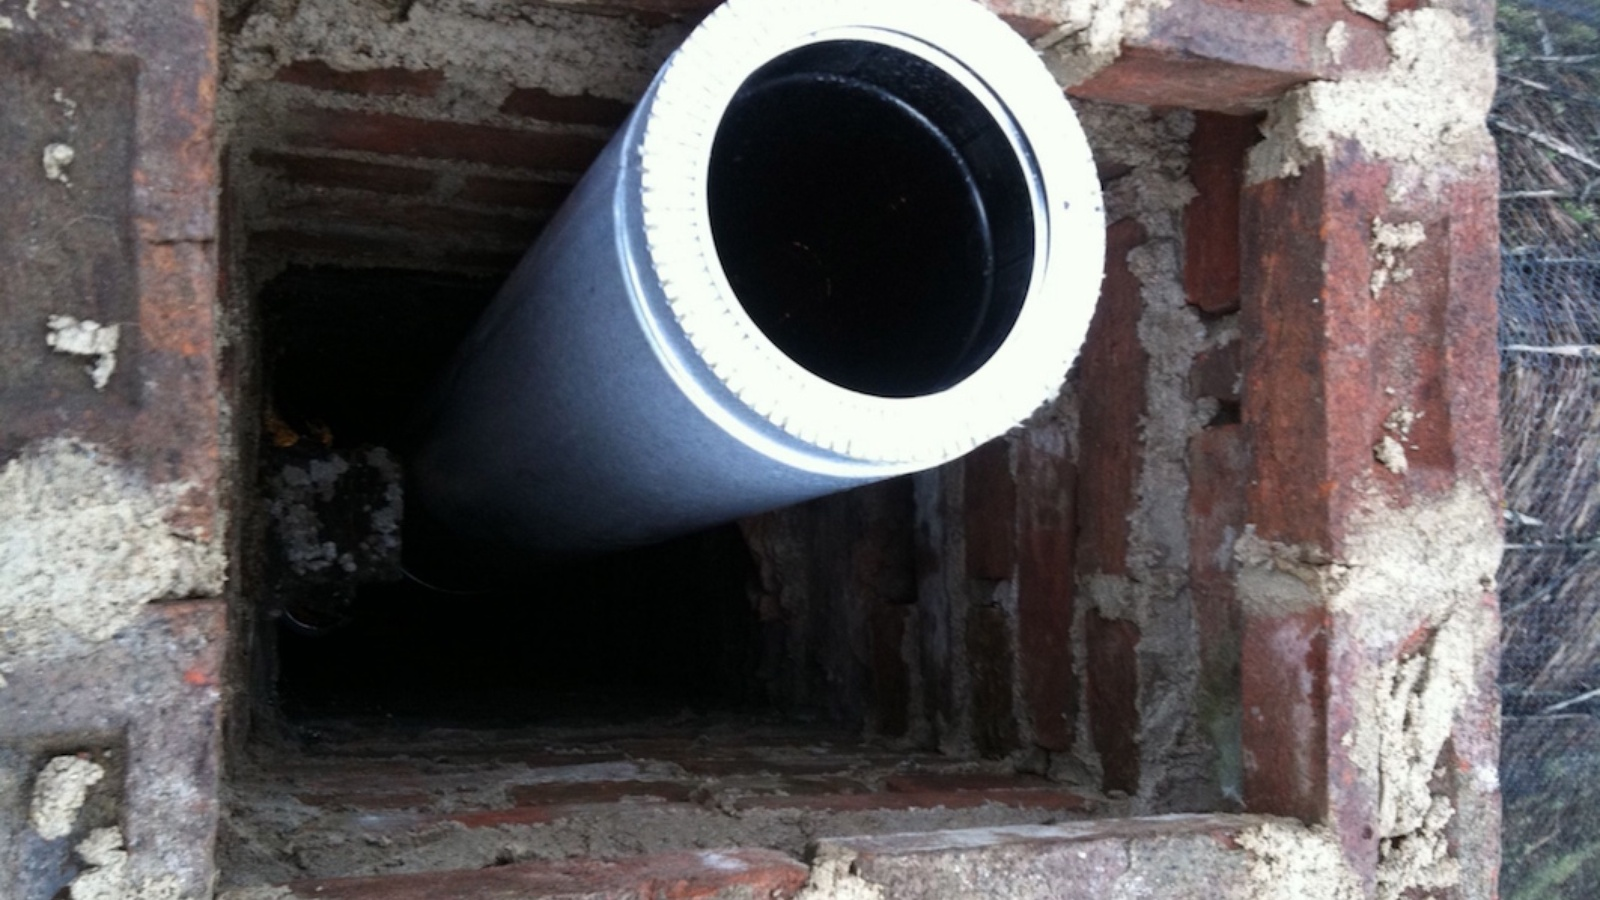 A twin wall flue system creates a new insulated safe alternative when installing a stove in a thatched property.